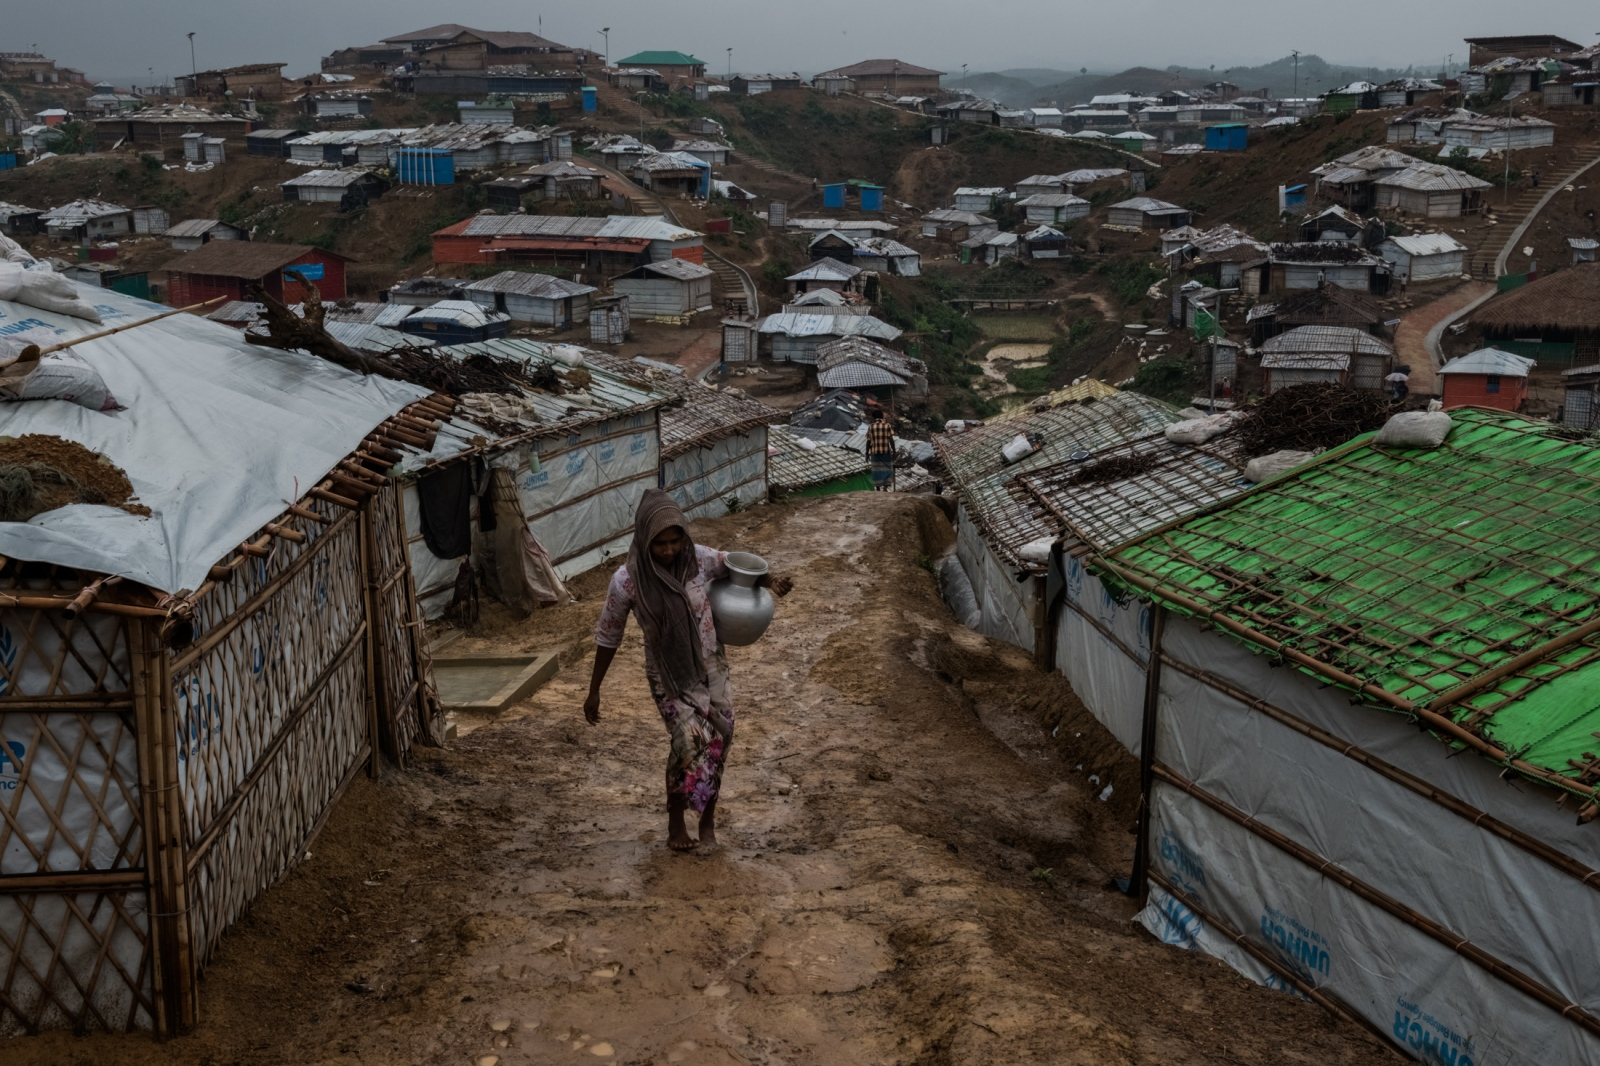 The Kutupalong refugee camp in Bangladesh